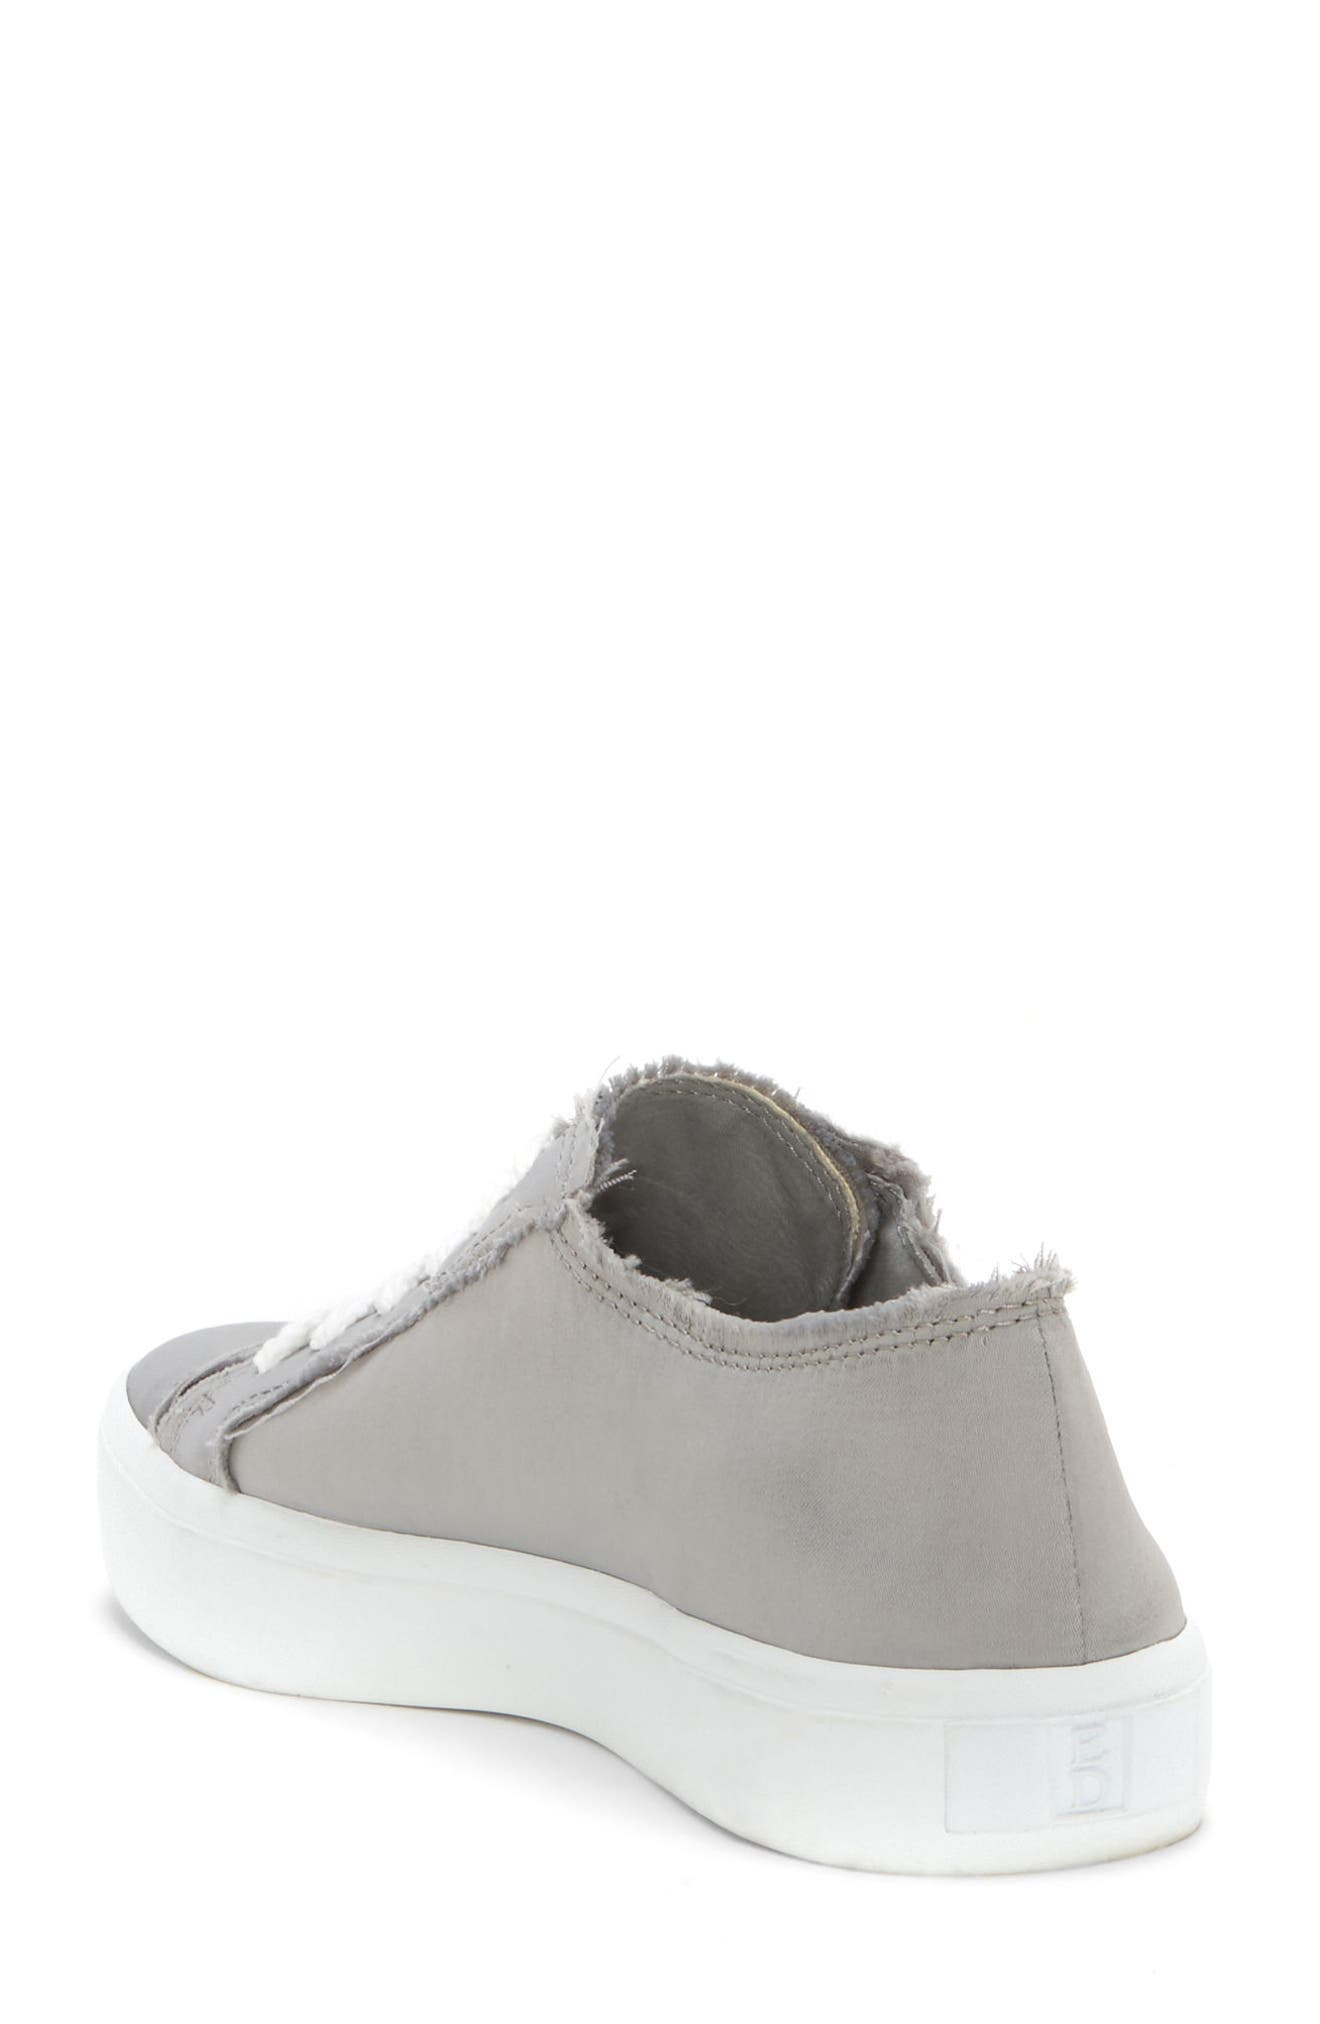 Dorin Sneaker,                             Alternate thumbnail 2, color,                             Gravel Fabric